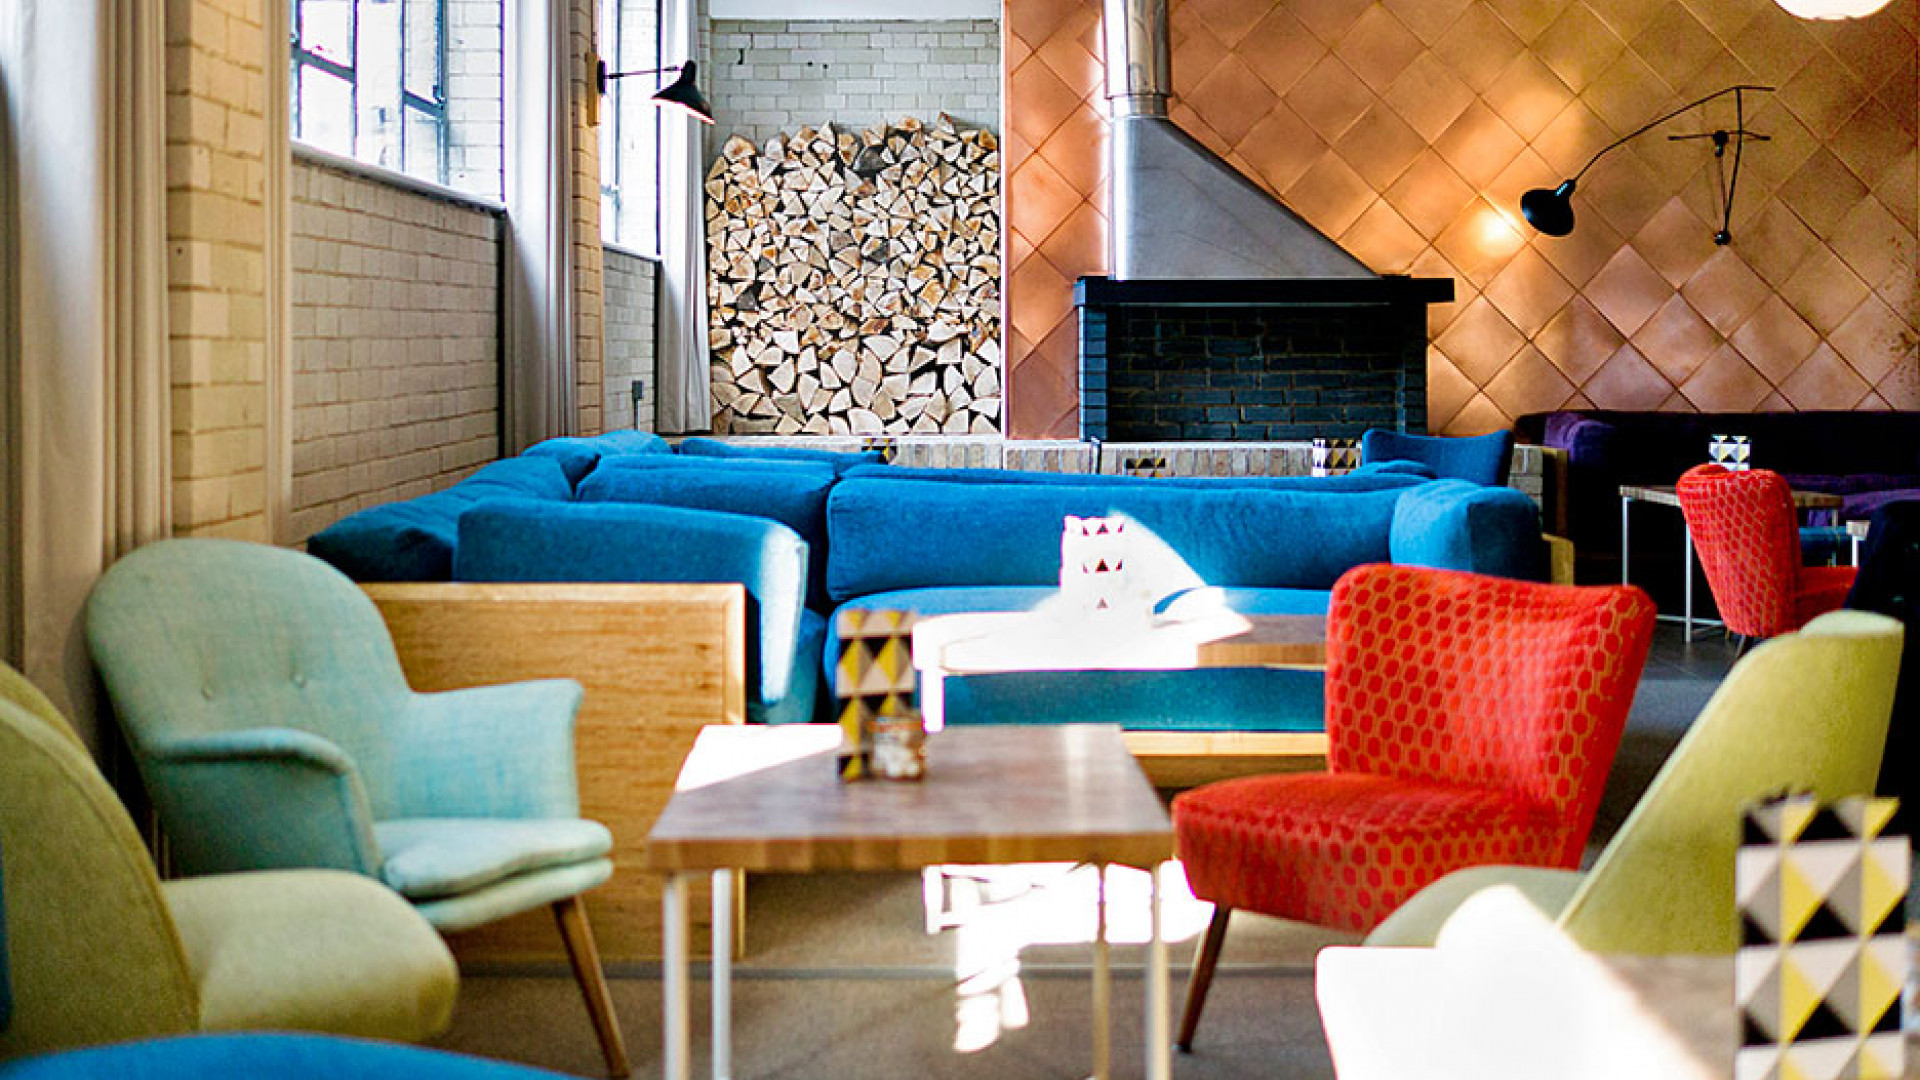 Relaxed but stylish interiors at Forge & Co